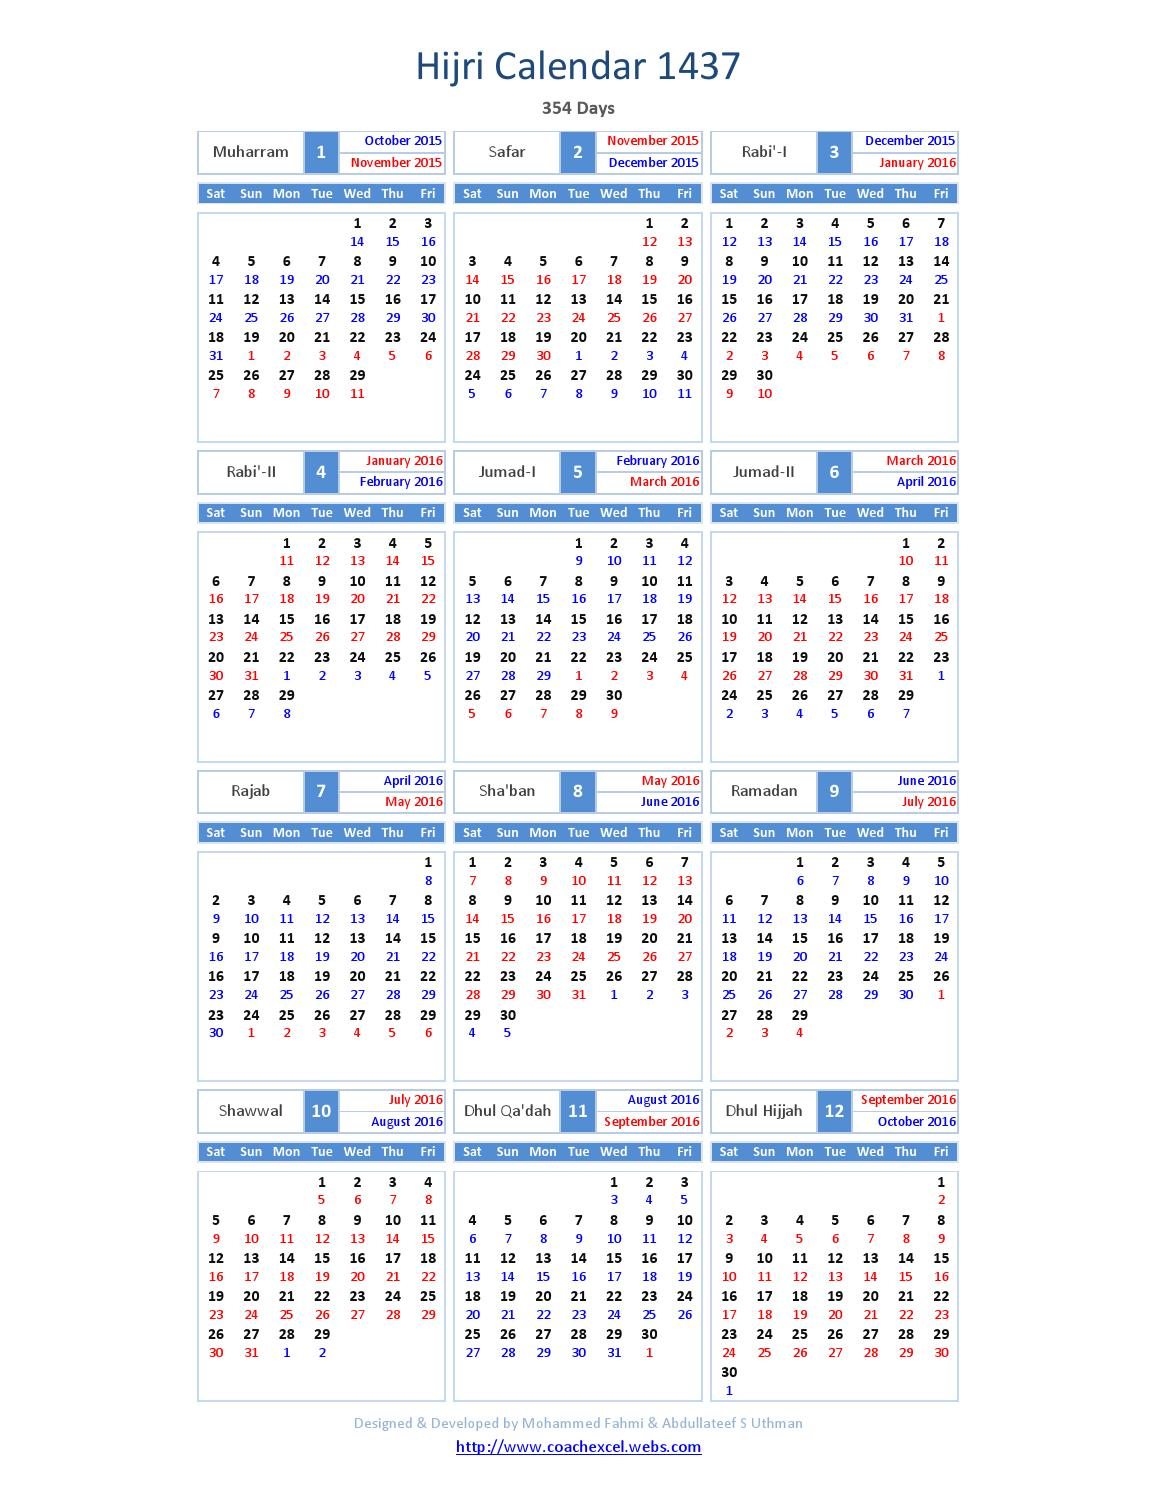 Hijri calendar 1437 by INTERNATIONAL MOON CALENDAR - issuu